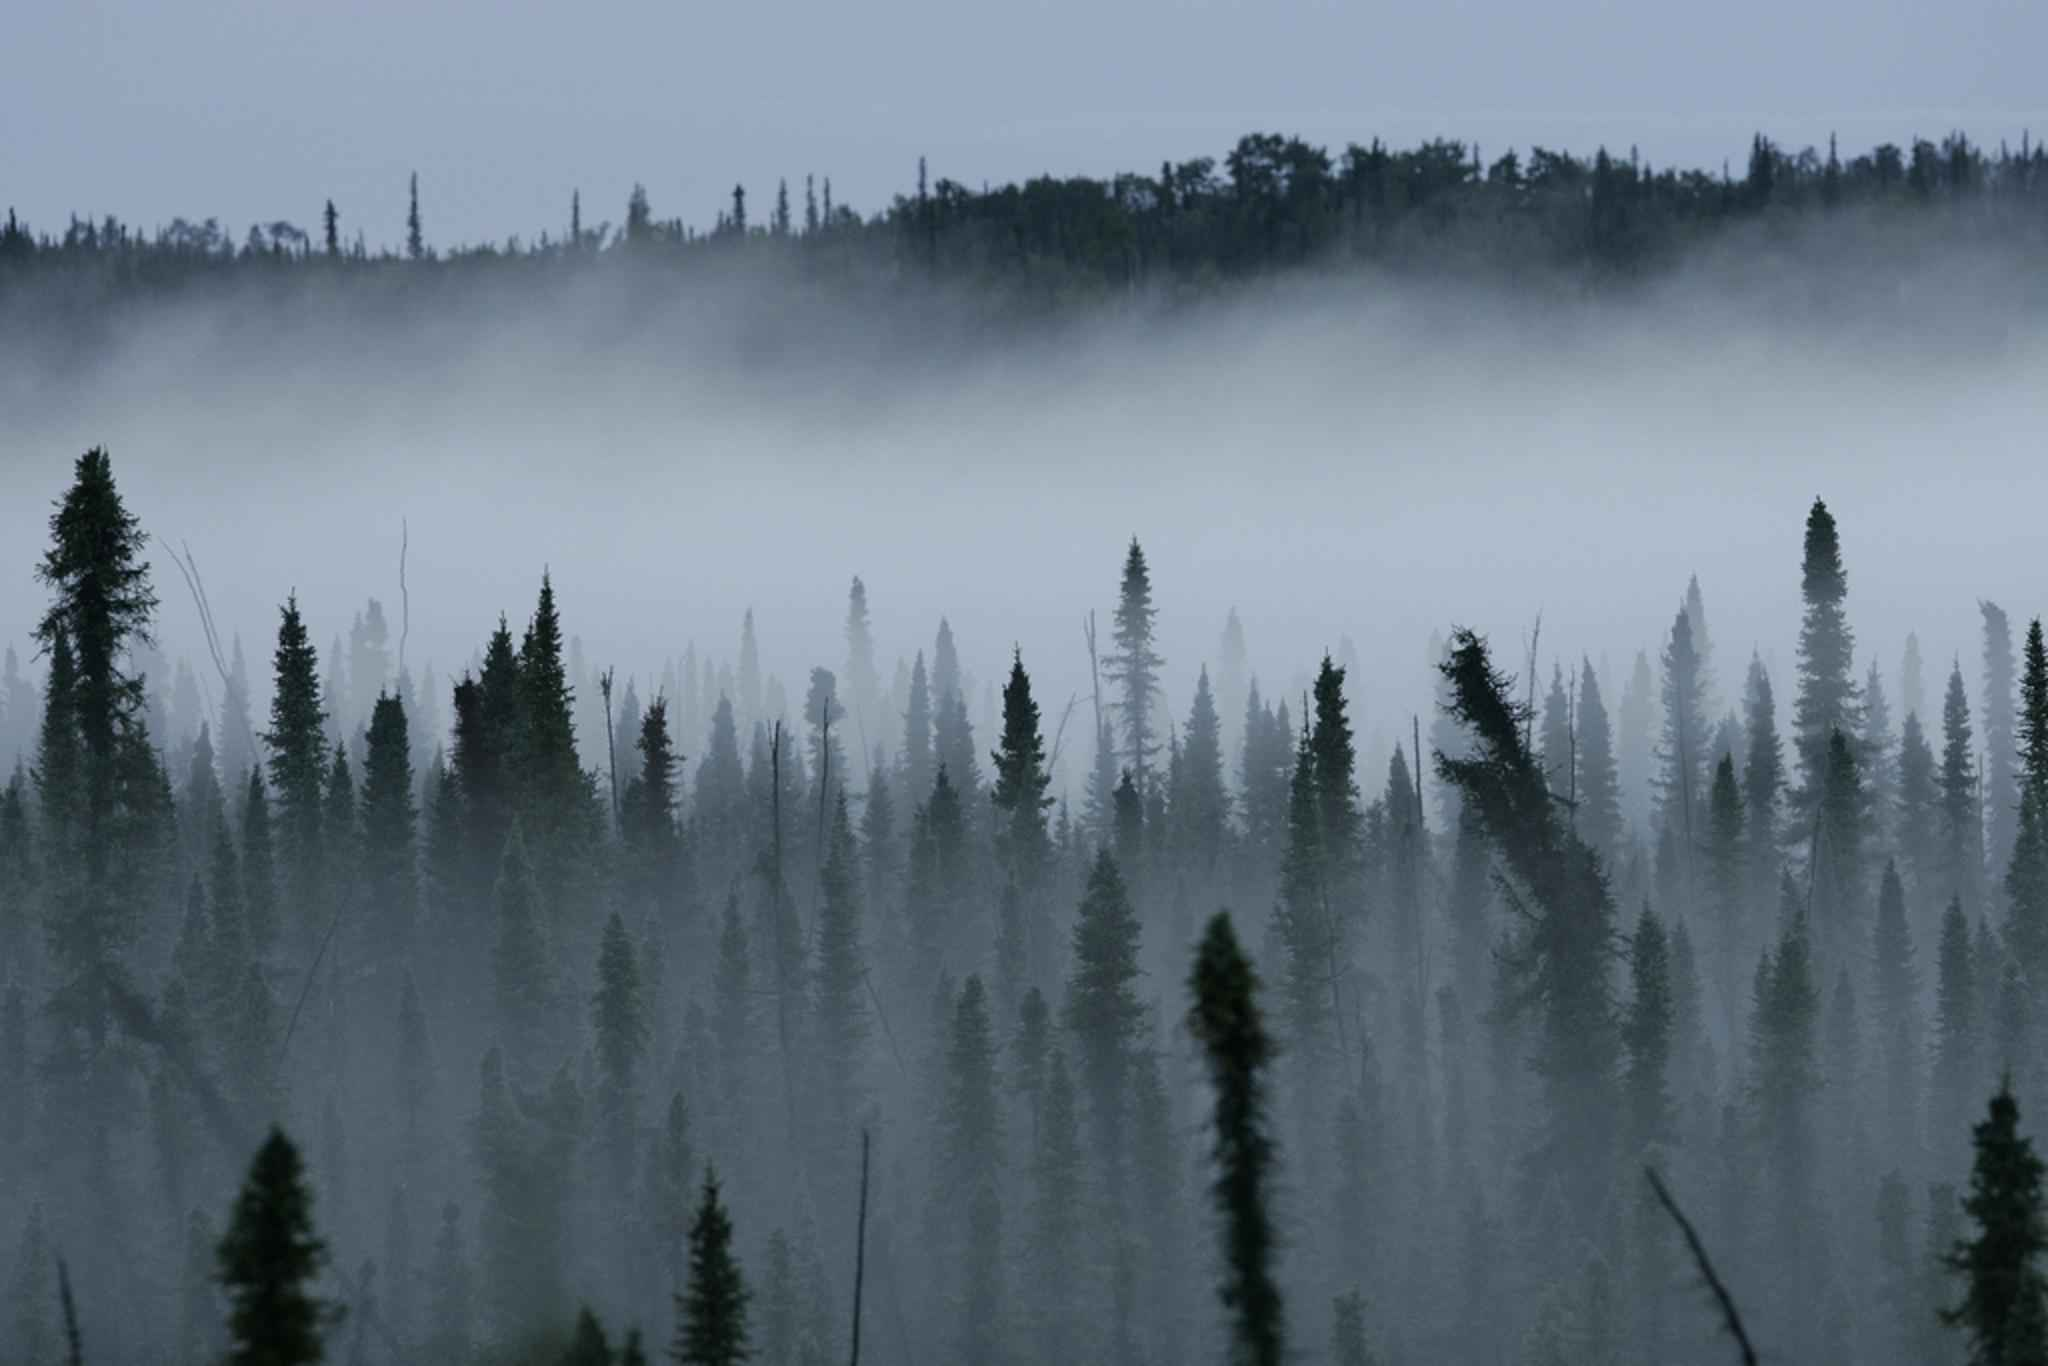 FileA Mist Rises From A Black Spruce Forest